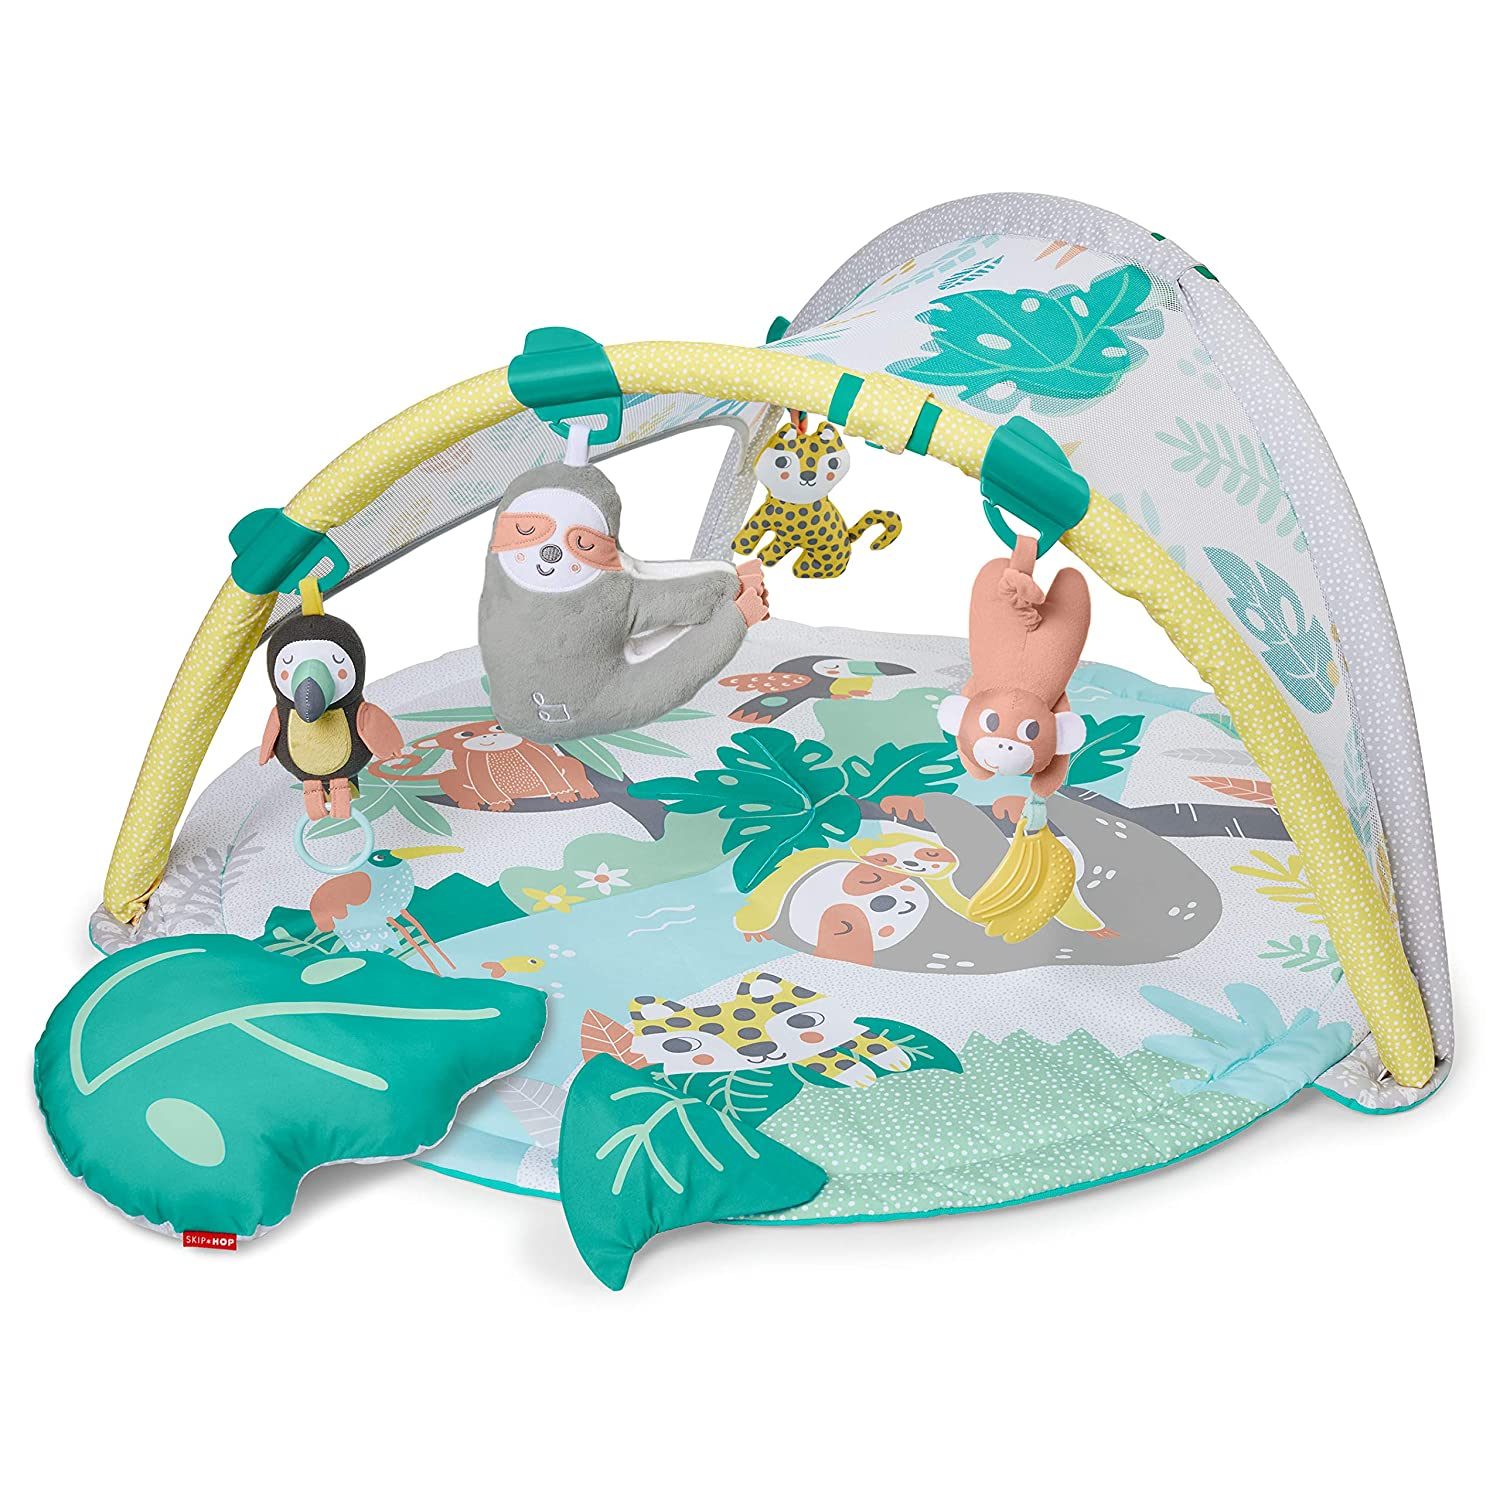 Skip Hop Baby Play Gym with Soother, Tropical Paradise, Green